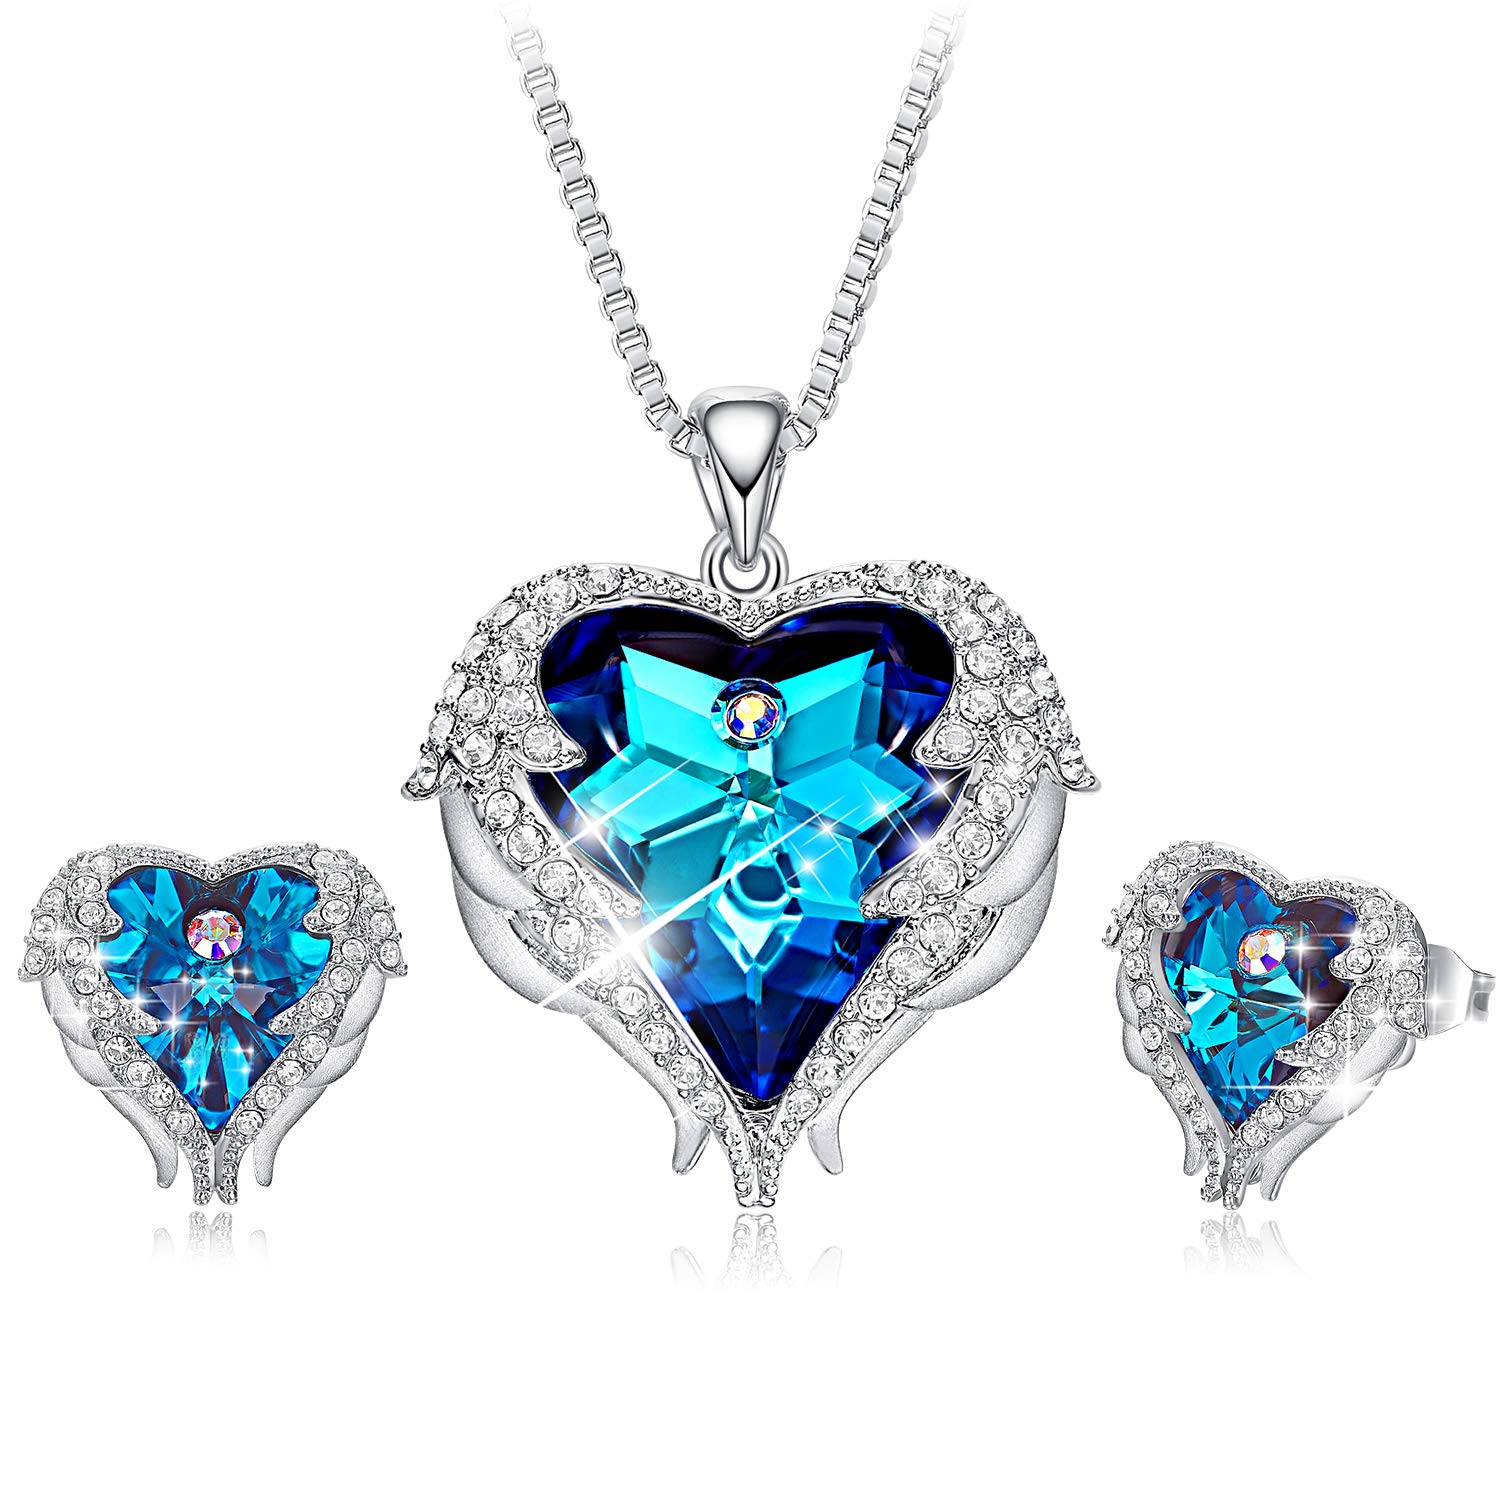 CDE Angel Wing Crystal Stud Earrings Blue Heart of Ocean Pendant Silver Necklaces Jewelry Set for Women, Crystals from Swarovski